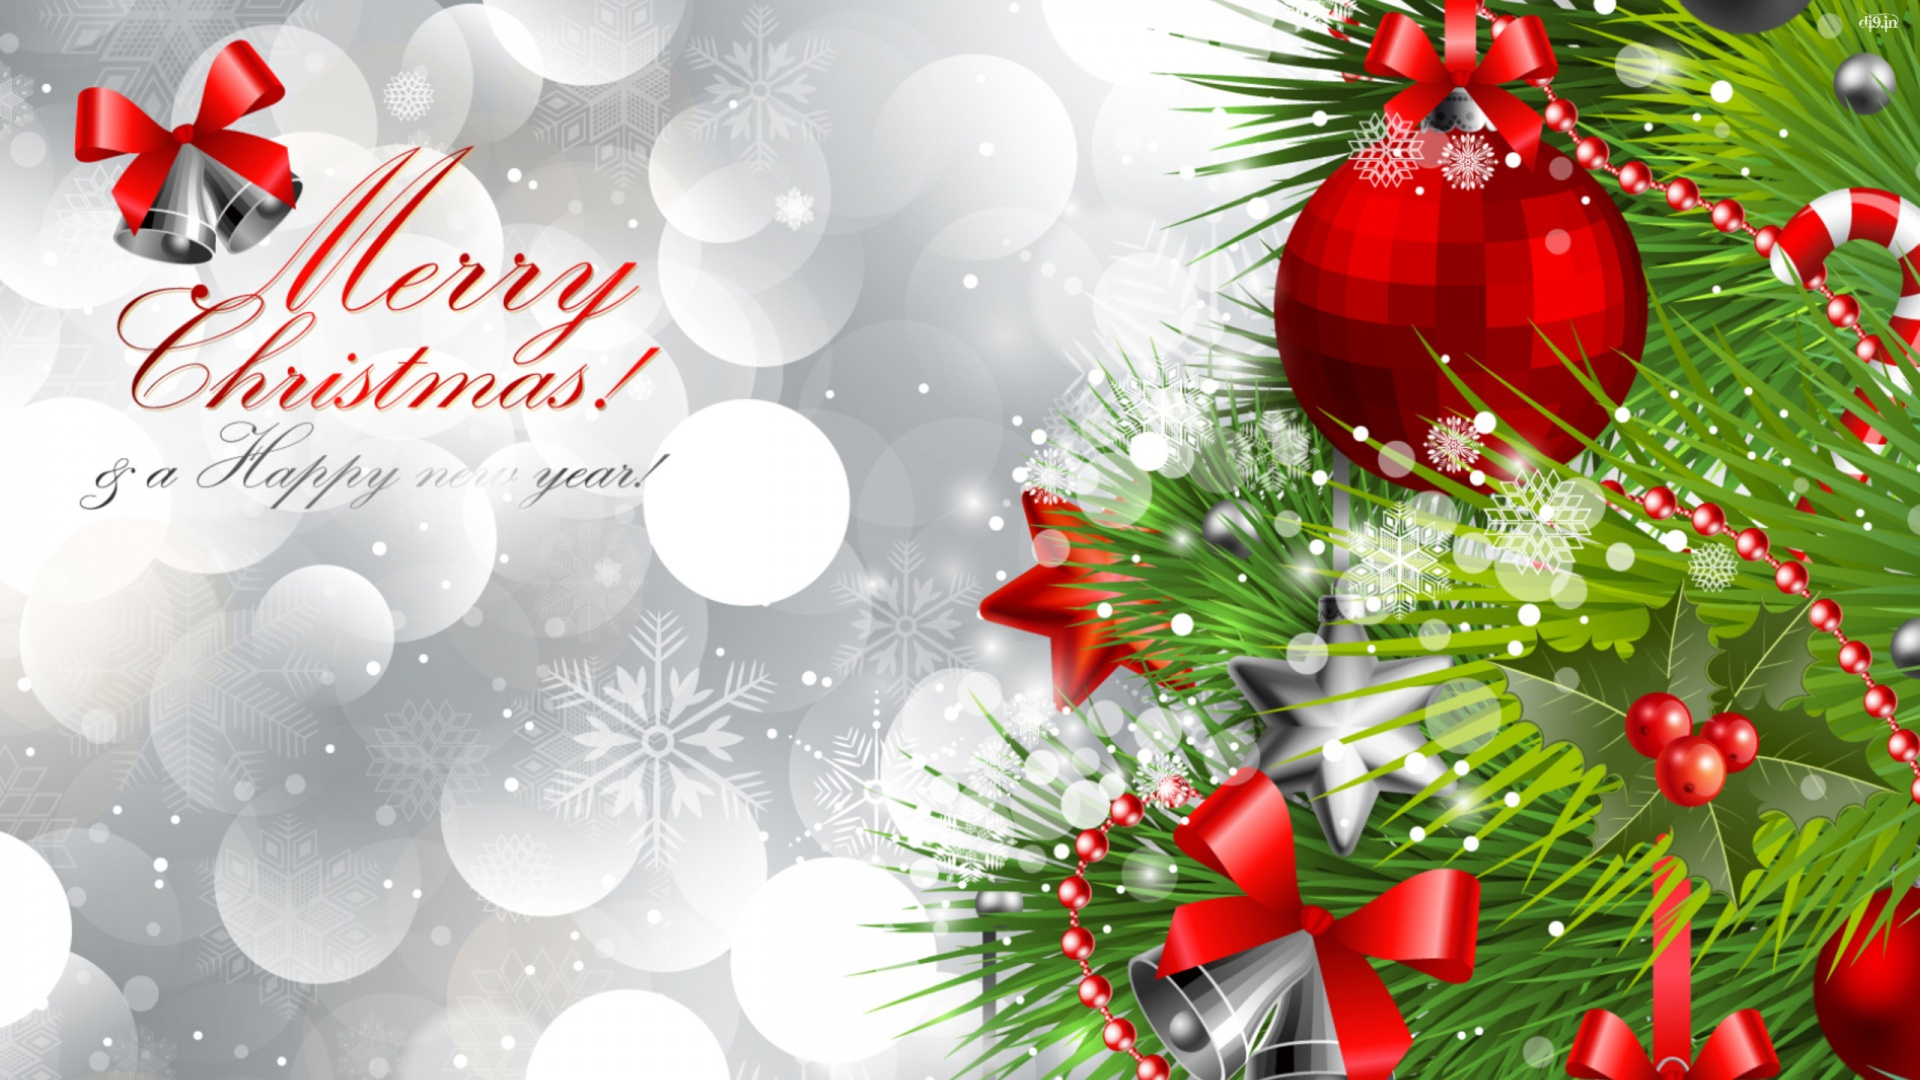 Merry christmas and happy new year whatsapp card